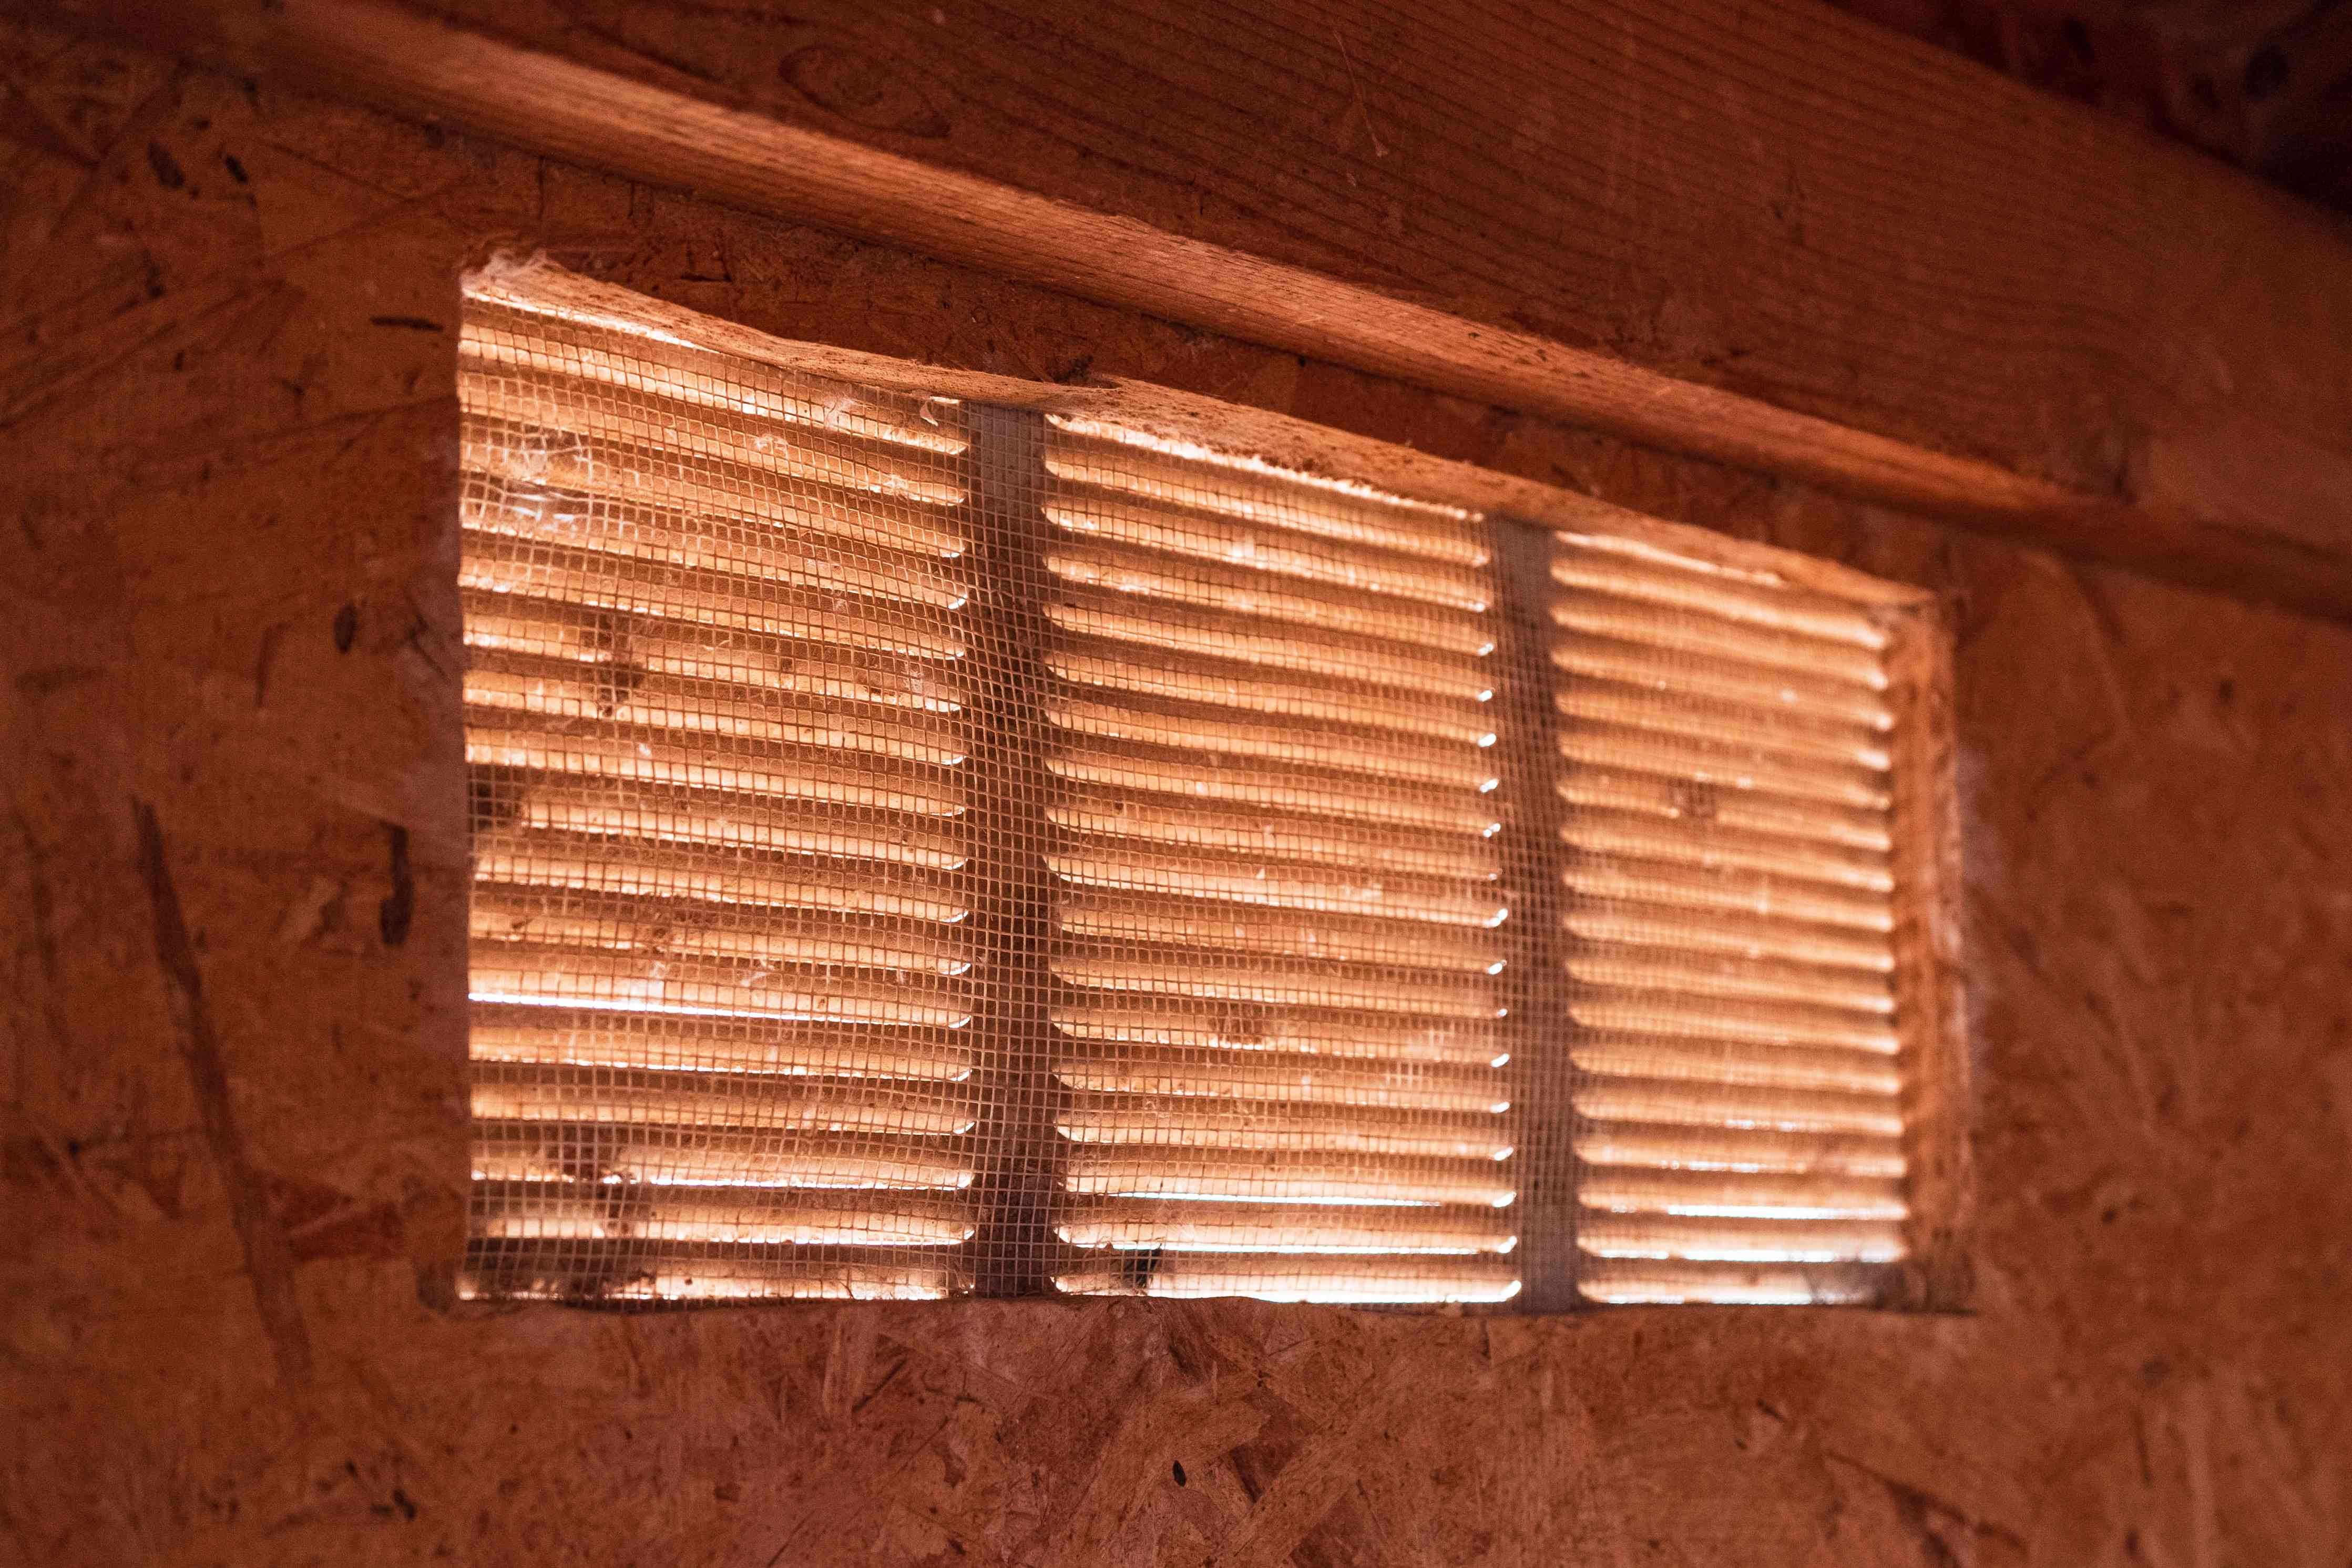 Hardware cloth protecting opening inside chicken coop